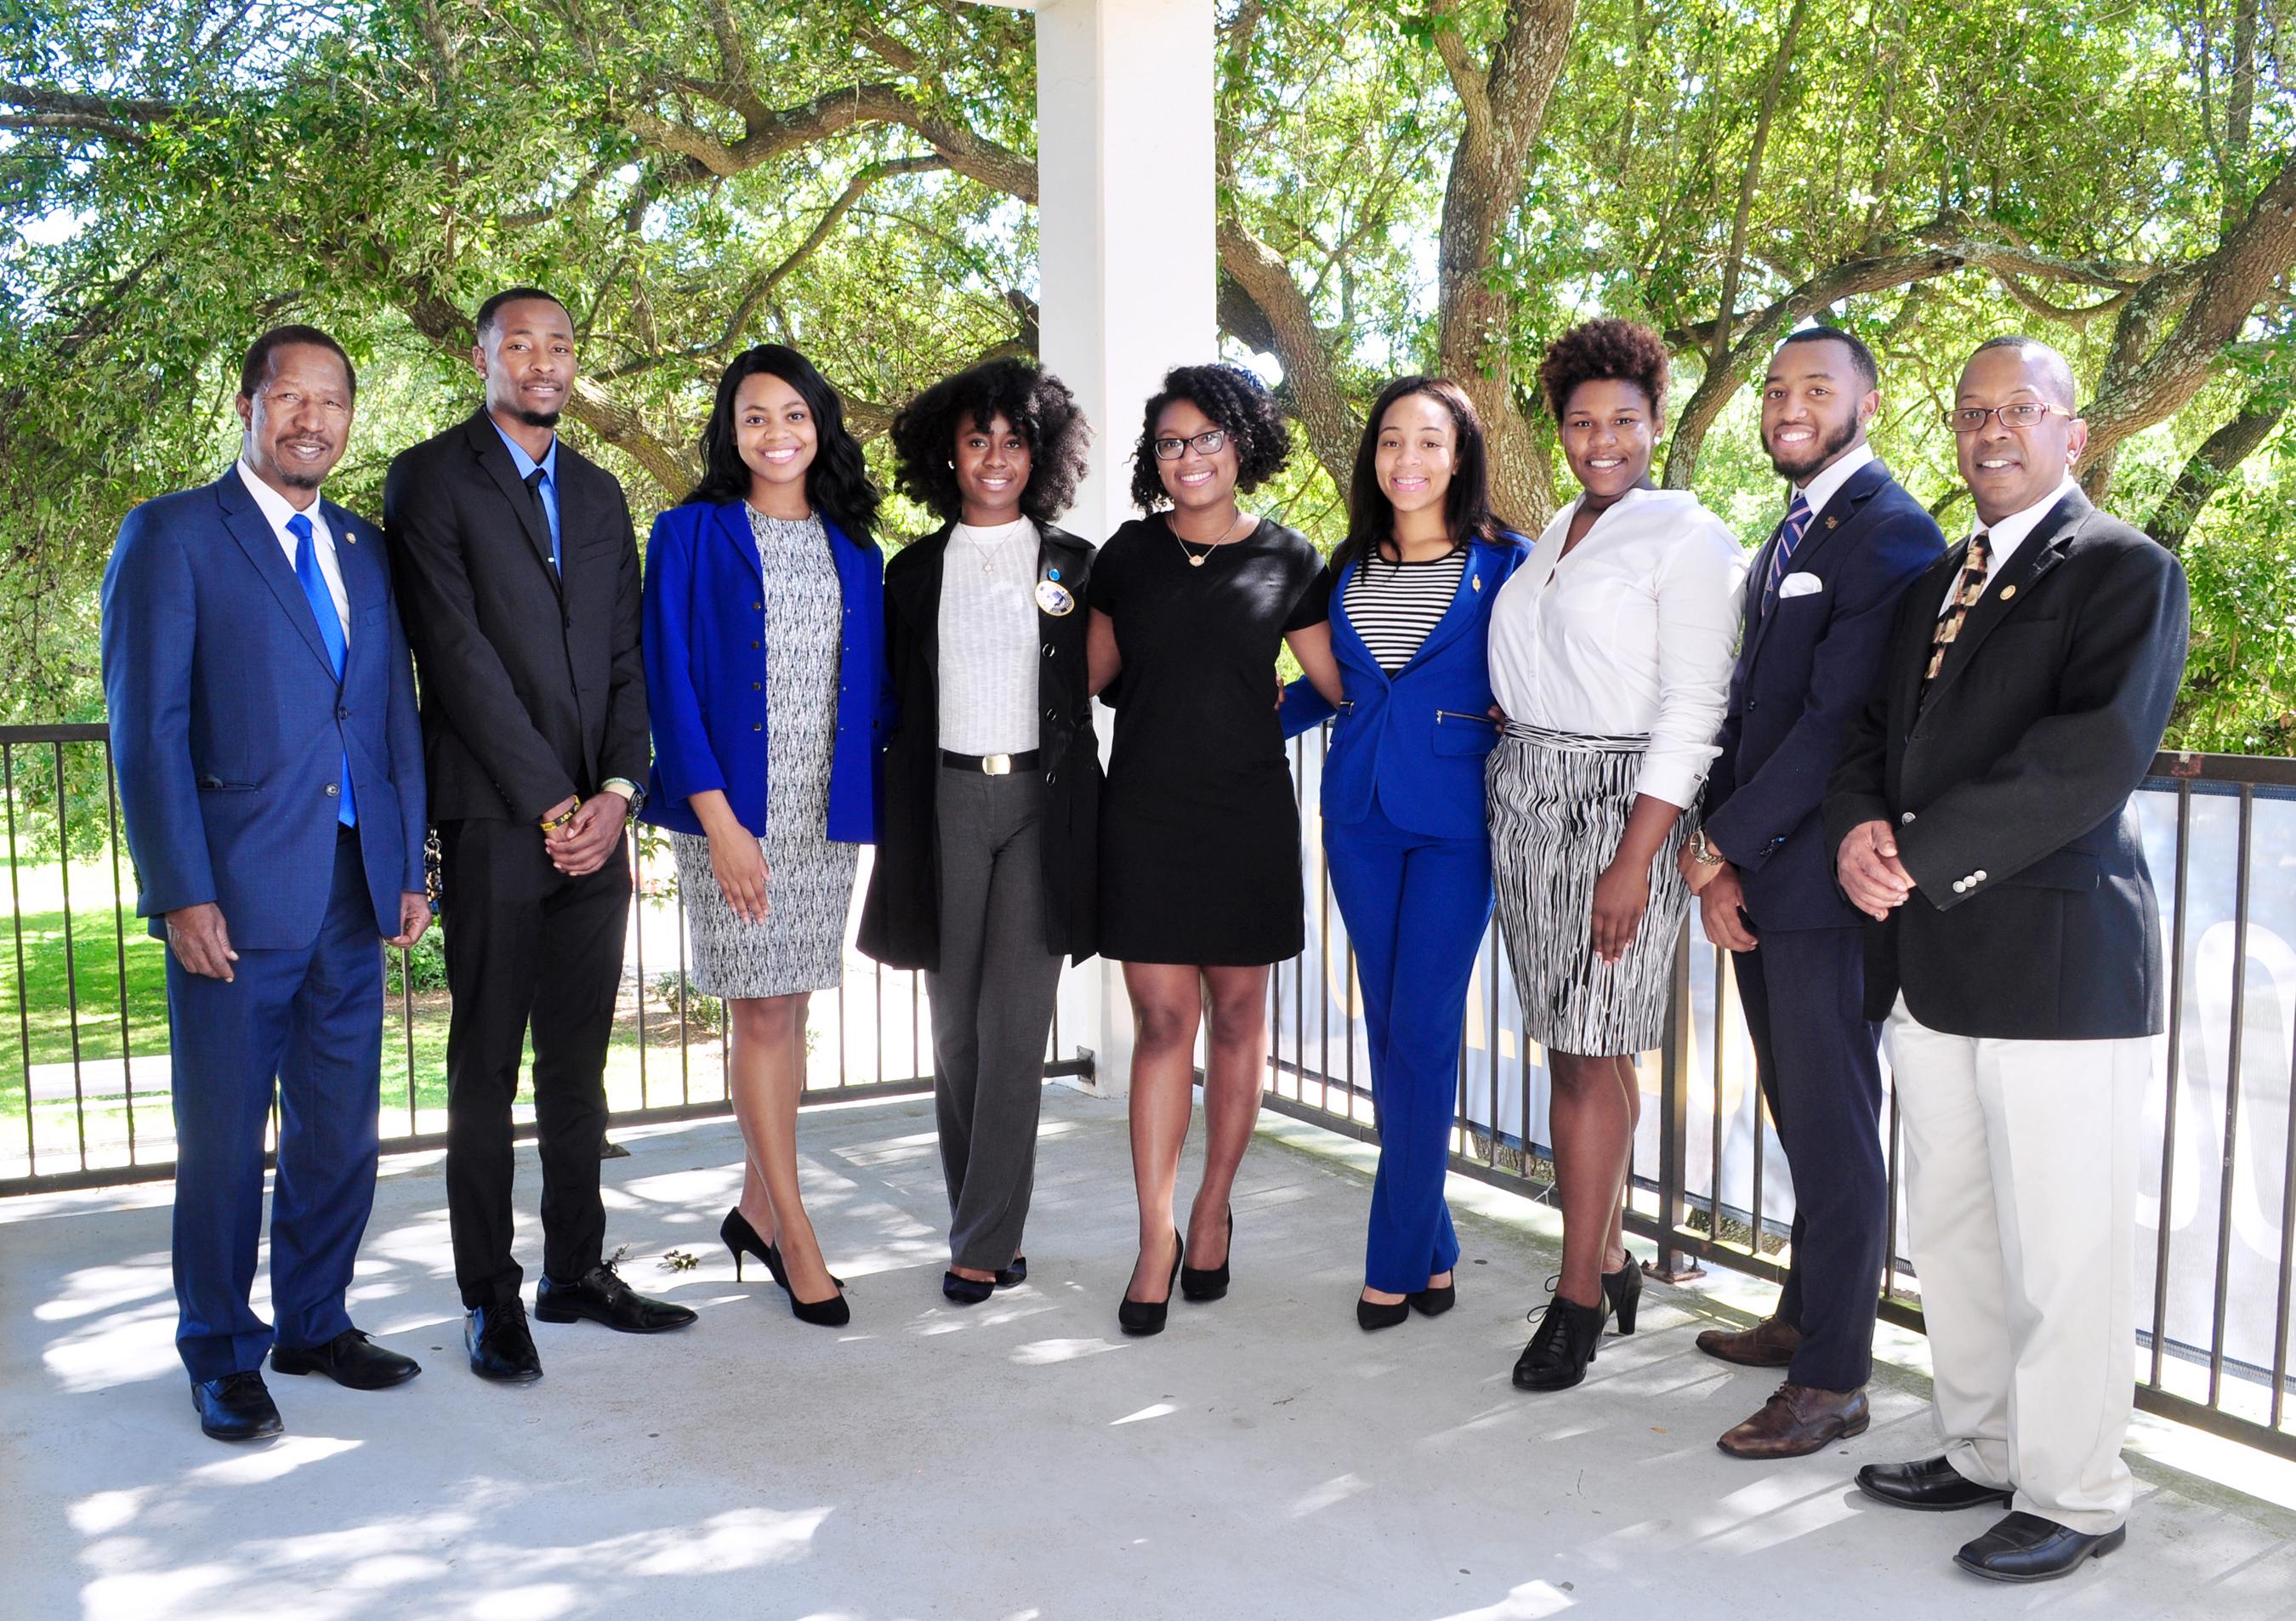 From Left to Right: Dr. Diola Bagayoko, Dean of the Dolores Margaret Richard Spikes Honors College, Justin Gay, Alana Stevenson, Anita Achea, Briana Turner, Rayda Lathon, Jonalyn Fair, Kristofer Mckinney, and Mr. Eric Pugh, DMRS Honors College Program Associate and Belize Faculty Representative